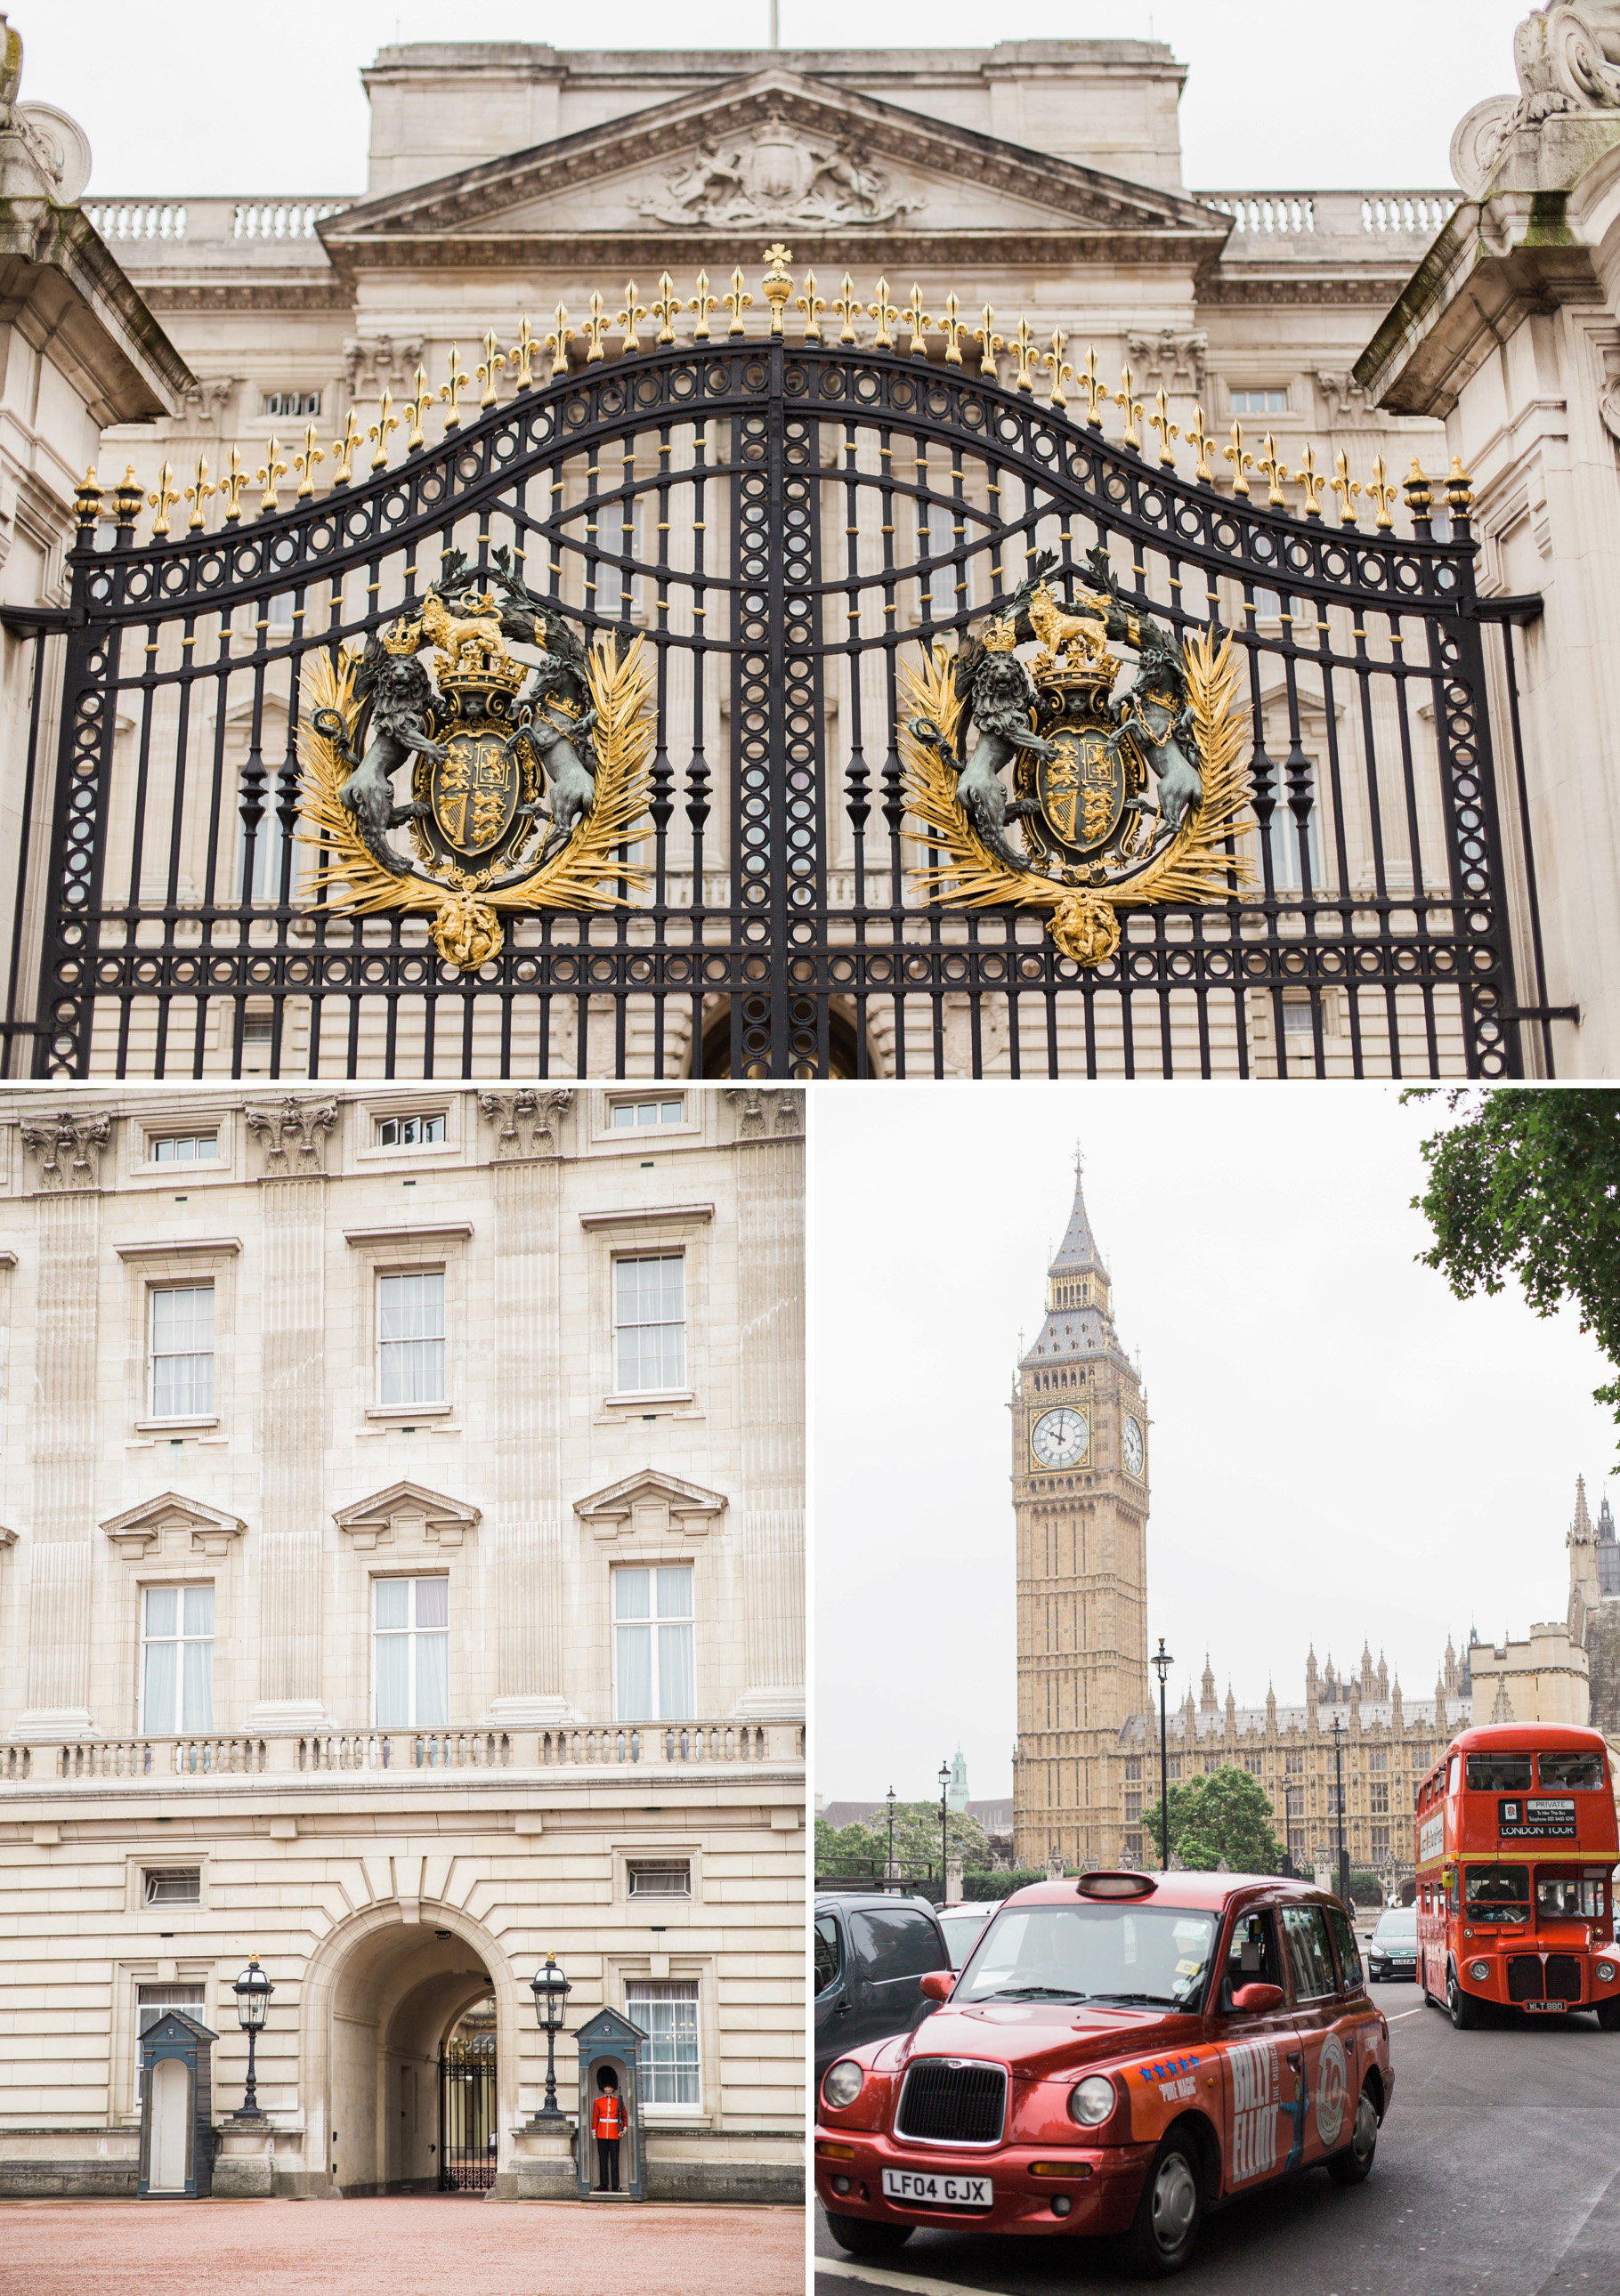 11-London-Buckingham-Palace-England-Europe-Travel-Anniversary-Trip-Photography-by-Betty-Elaine